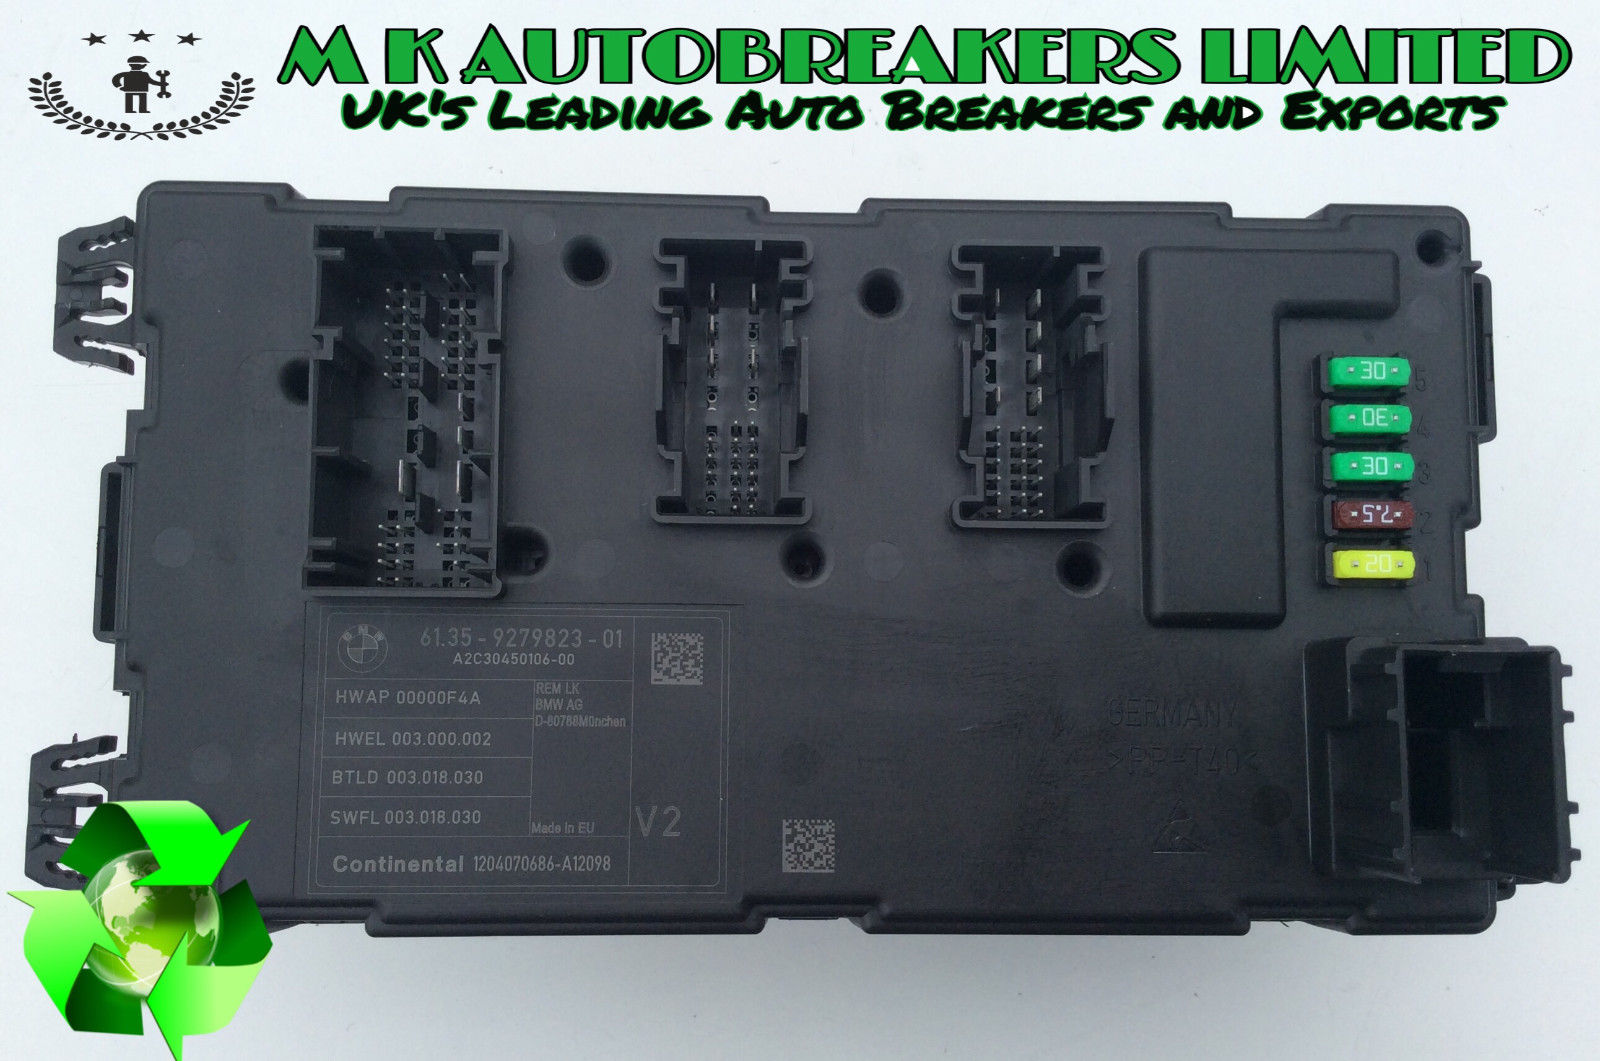 bmw 3 series e90 e91 from 05 08 front fuse box breaking for spare rh  mkautobreakers